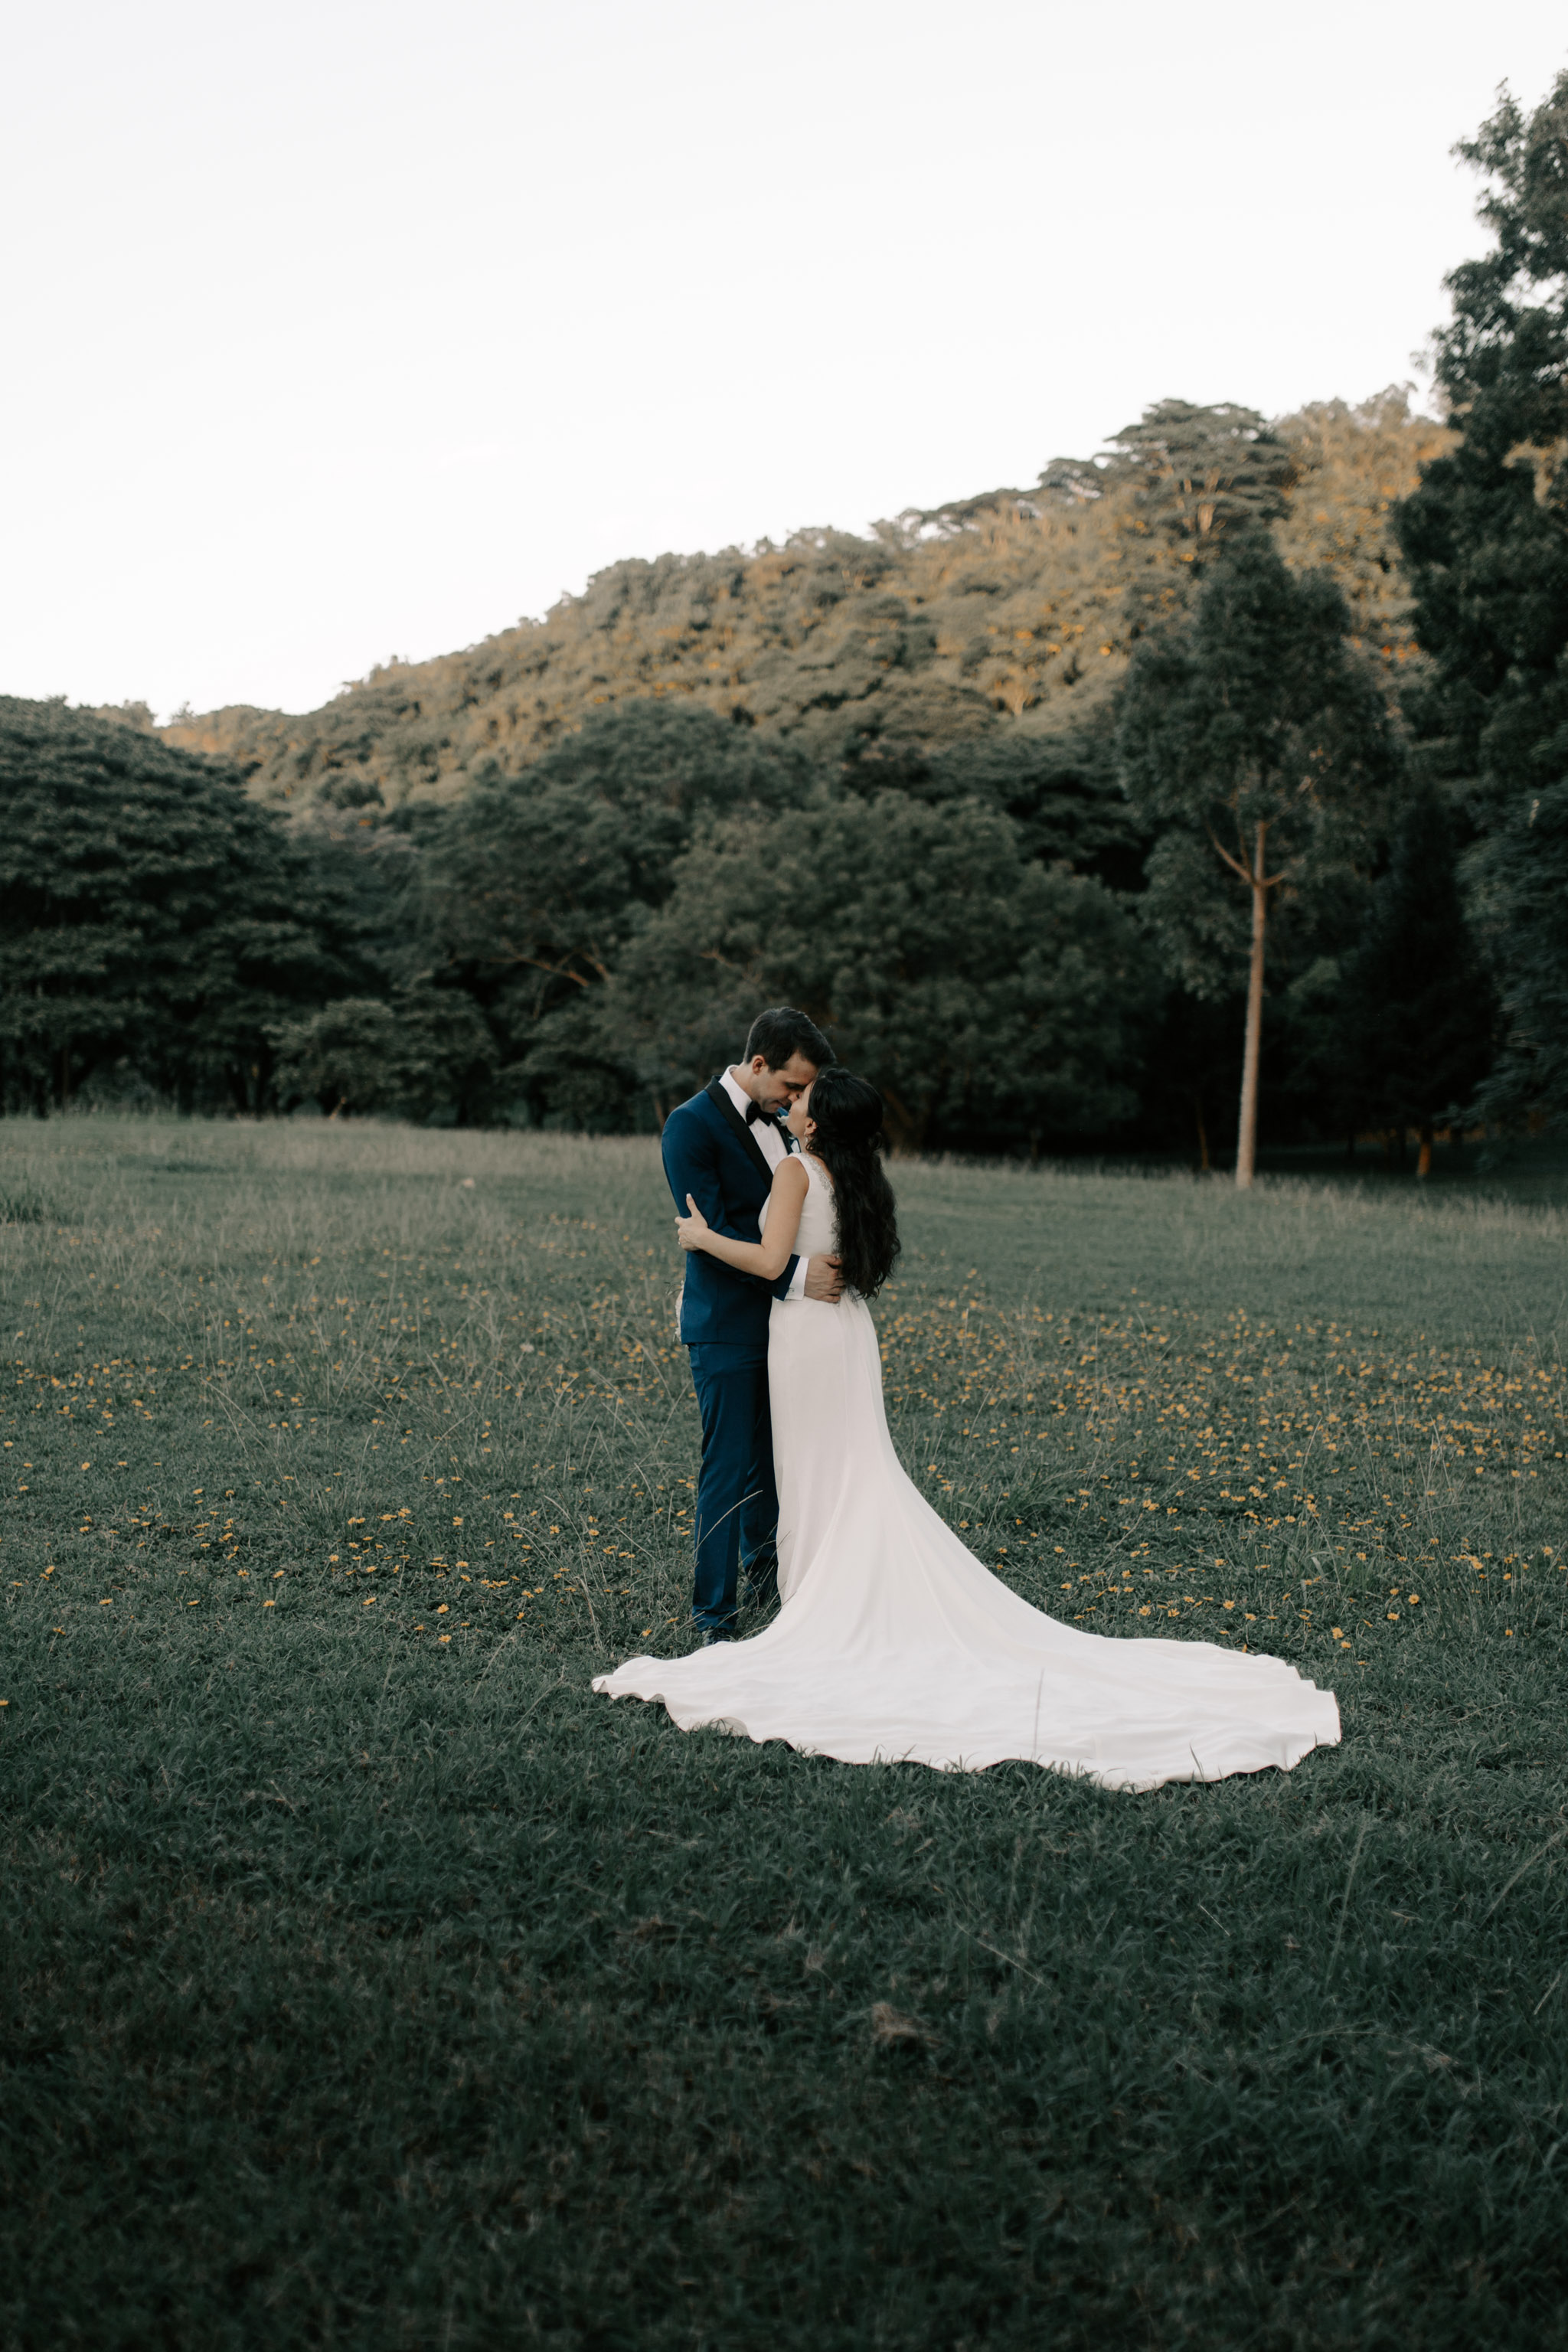 McBryde National Botanical Gardens Wedding by Kauai Wedding Photographer Desiree Leilani